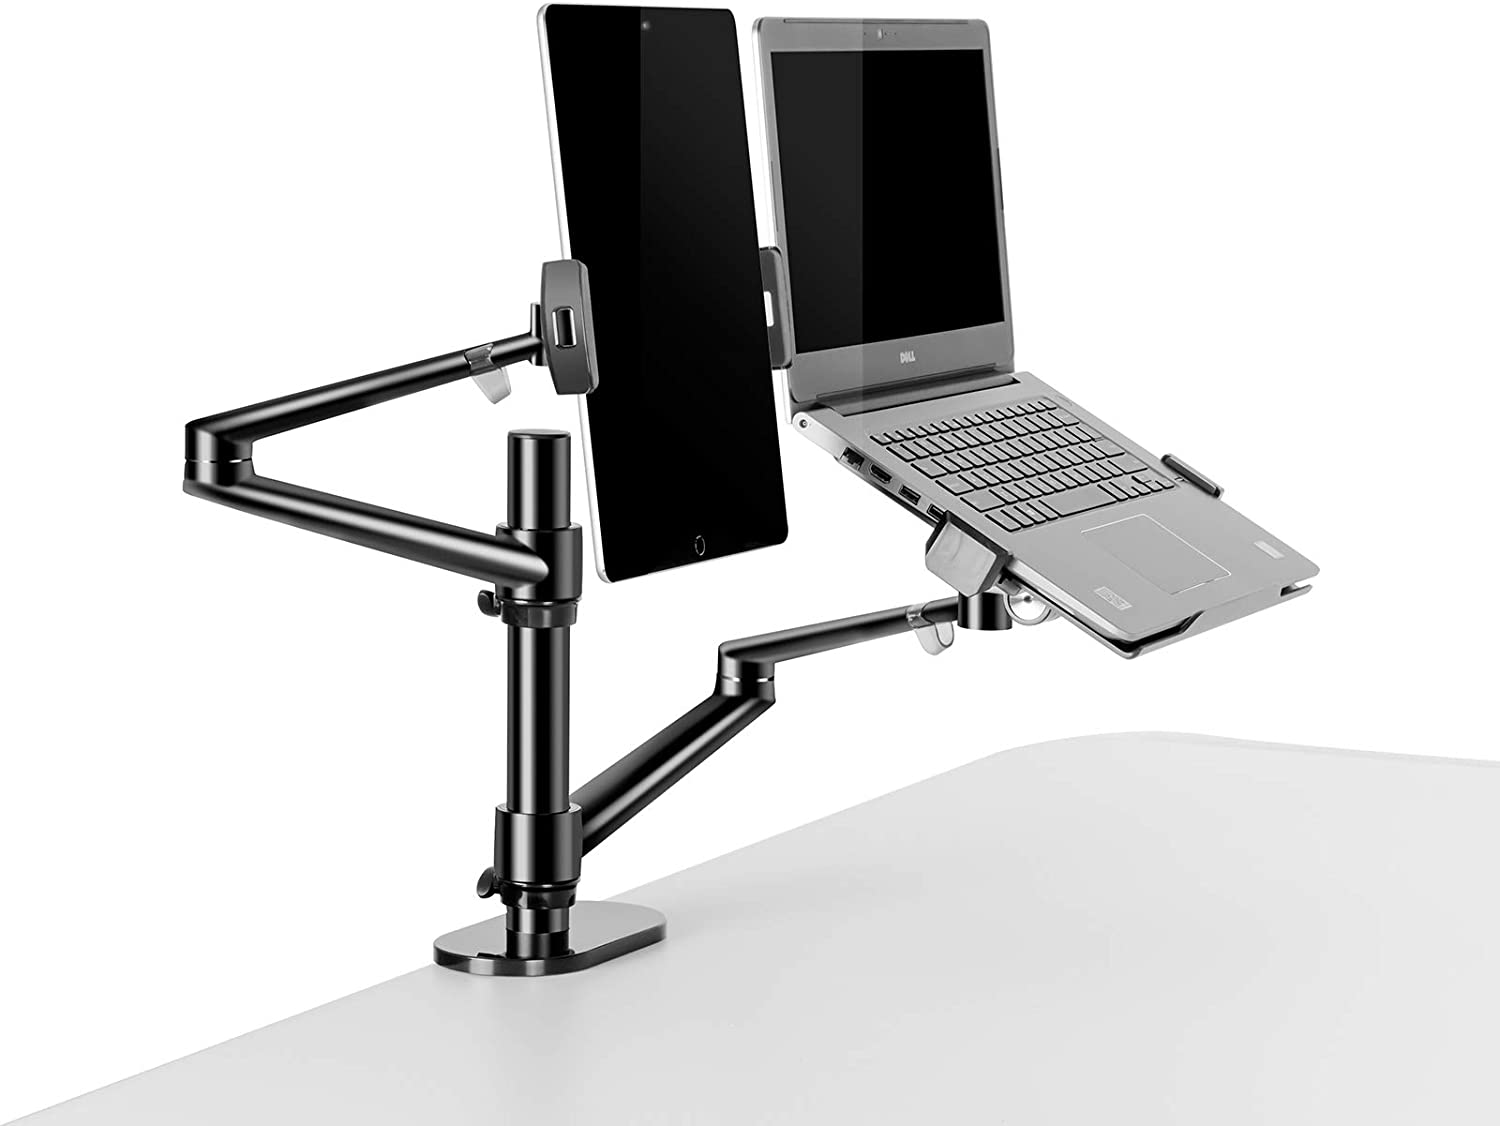 3 in 1 Stand for Laptop and Monitor or Tablet, Laptop/Monitor Desk Stand arm, 360º Rotating, Height Adjustable,Supports Laptop(11-17 inch), Monitor(17-32 inch), Tablet/iPad Pro(5-13 inch)